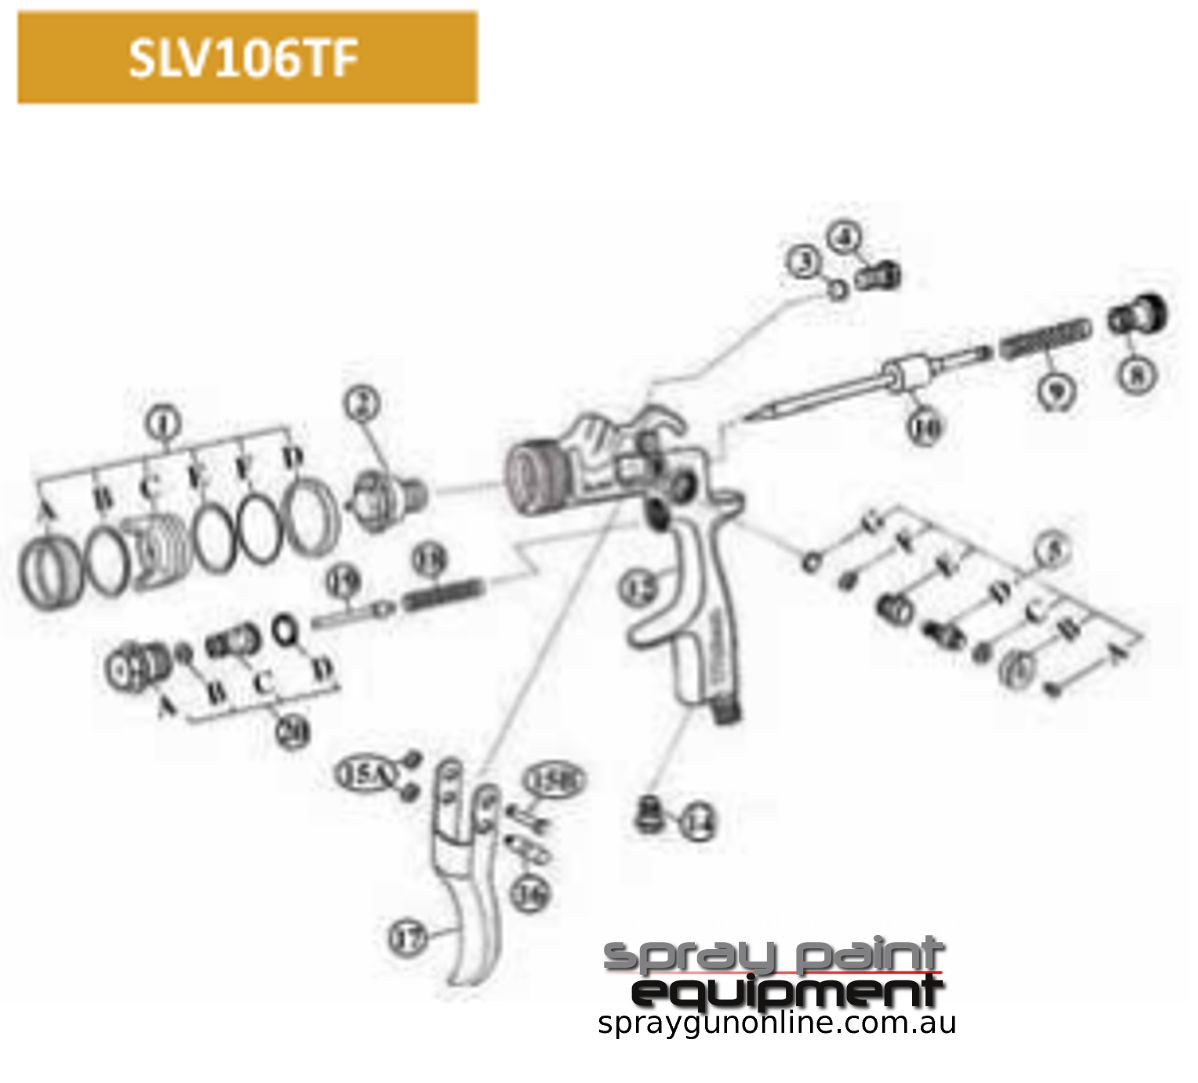 Spare parts schematic for Star SLV106TF Mini EVOT spray guns